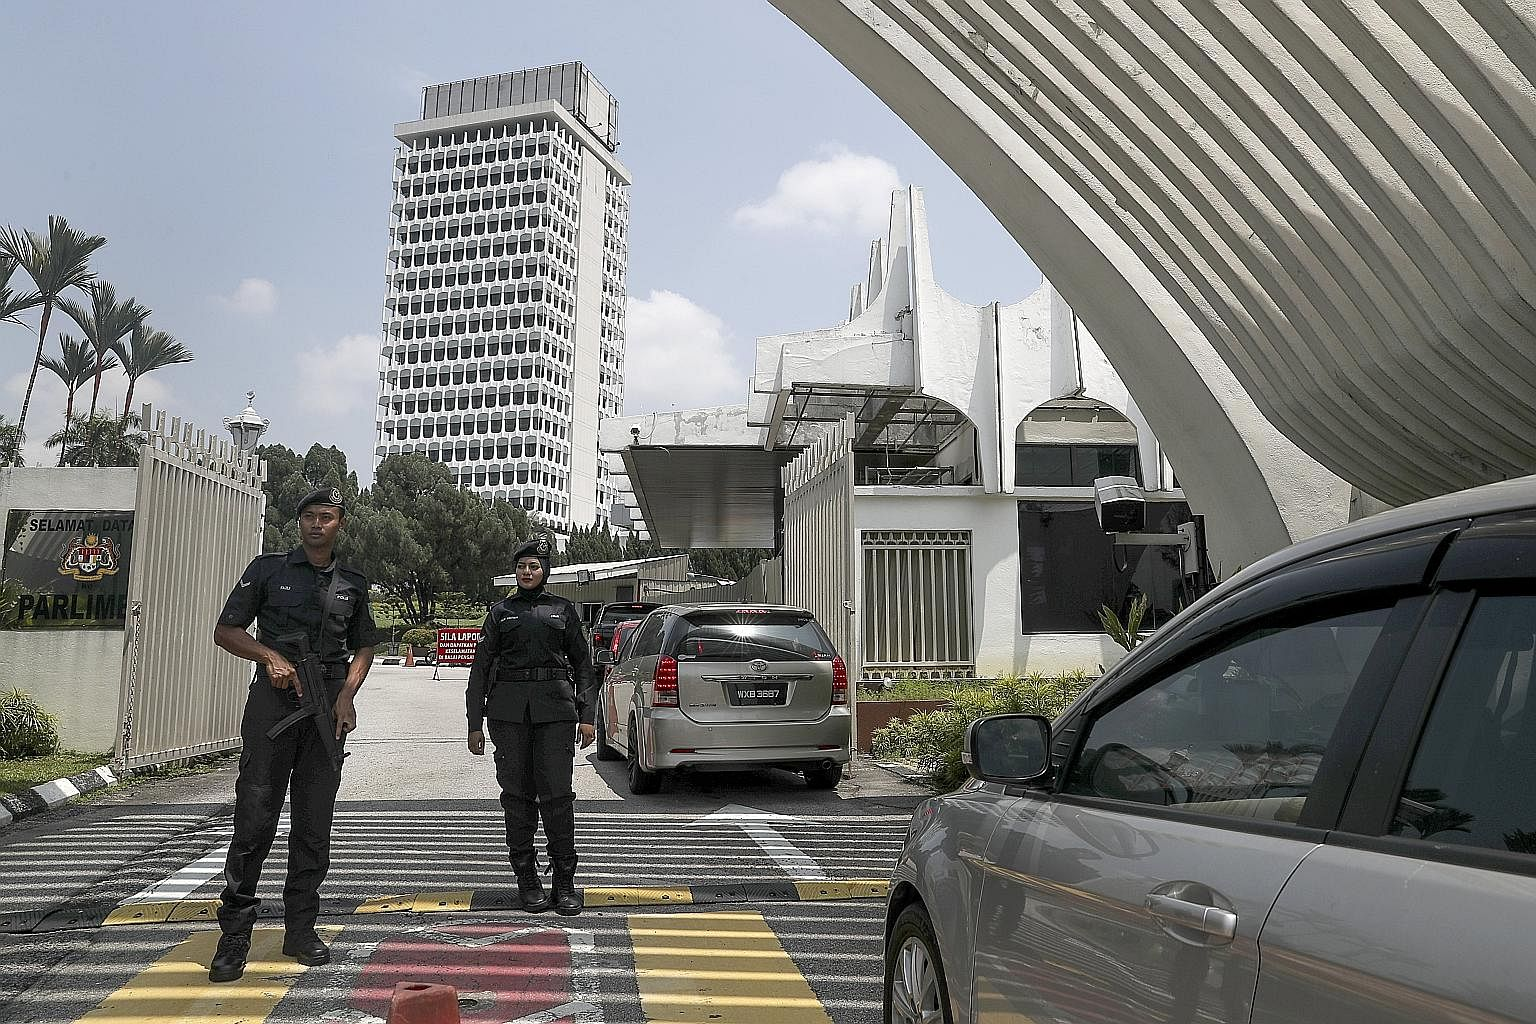 Royal Malaysian Police officers guarding the entrance to Parliament in Kuala Lumpur. Less than a year ago, the Chinese were angry with ultra Malay group Perkasa but now, many of them have donned the Pribumi uniforms and the party is cheered on by man